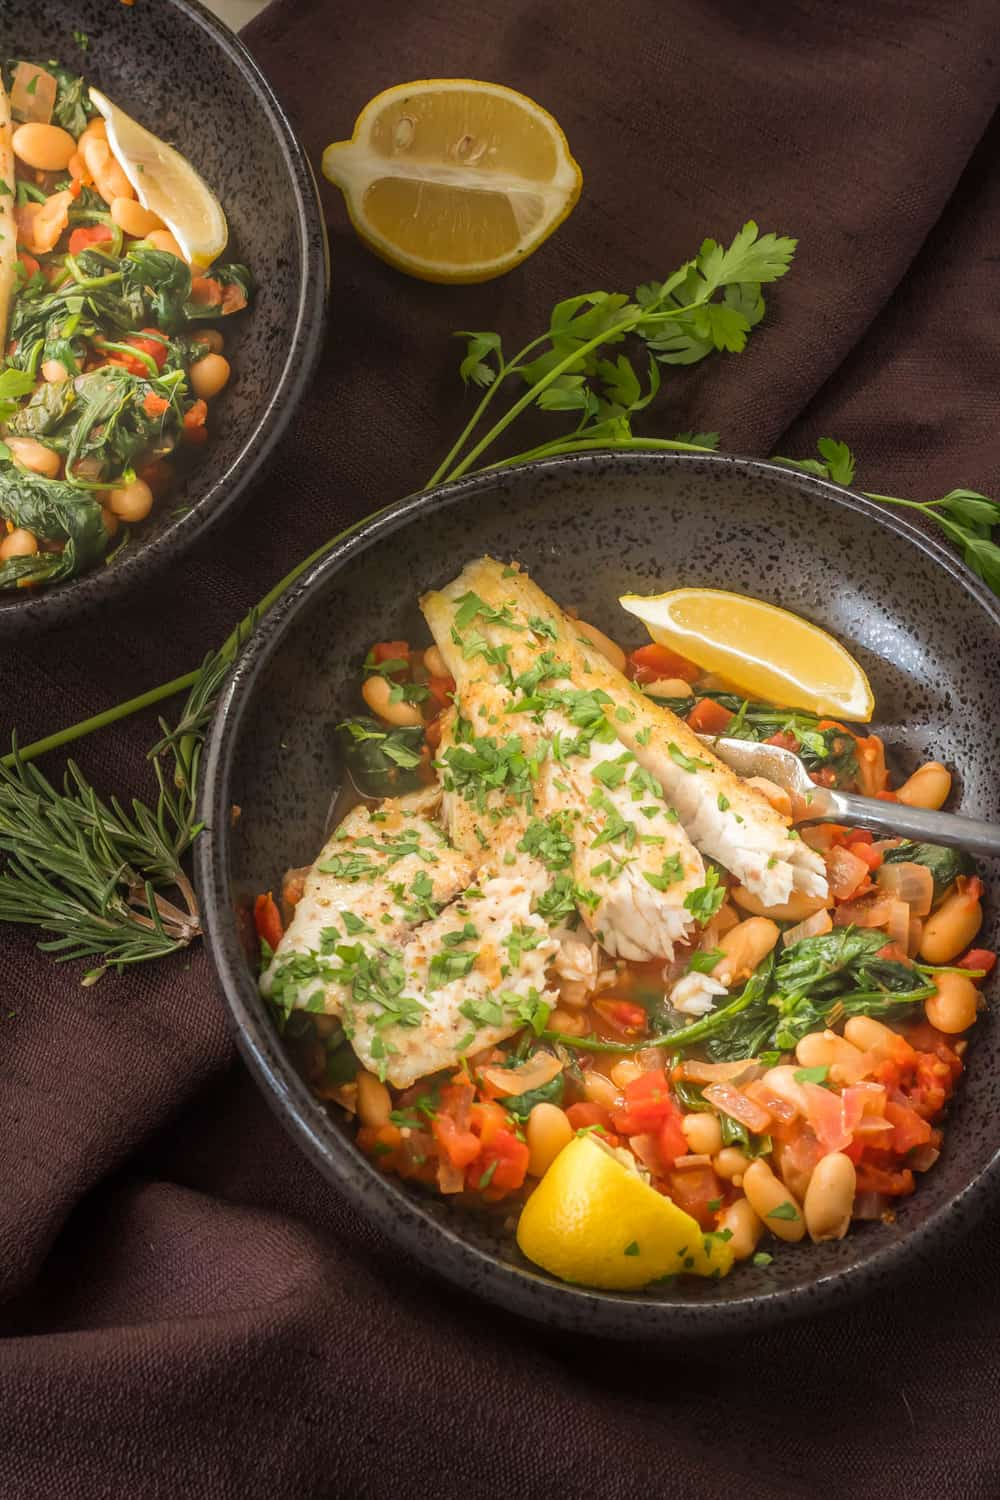 Tuscan Fish With Cannelini Beans, Tomatoes, & Spinach - a close up of the food in a black shallow bowl.